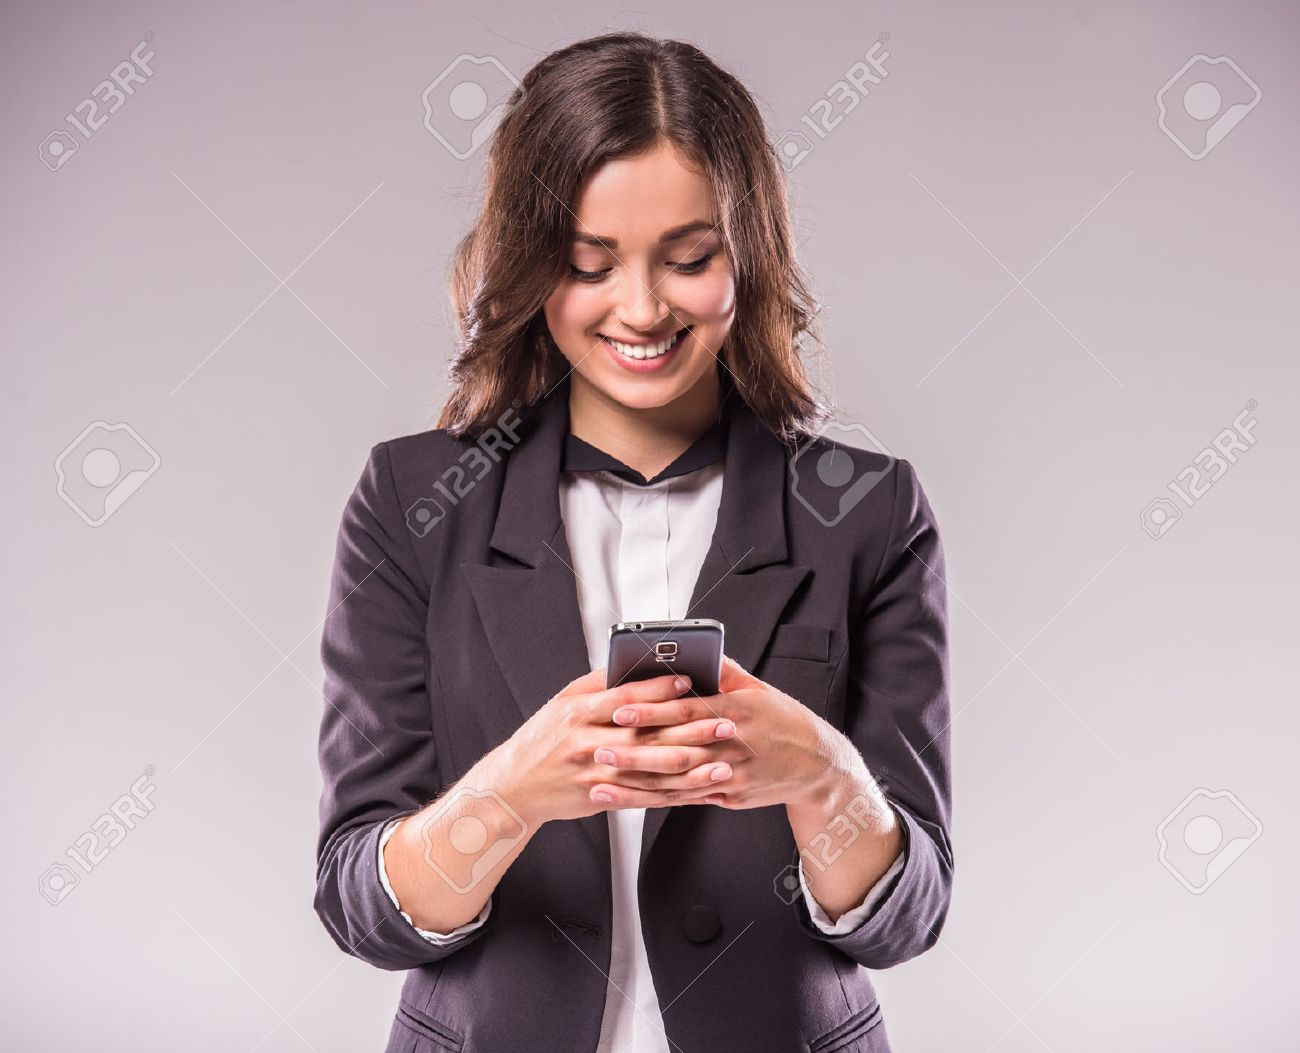 Young woman is writing a message with smartphone, standing on grey background. Standard-Bild - 48108212